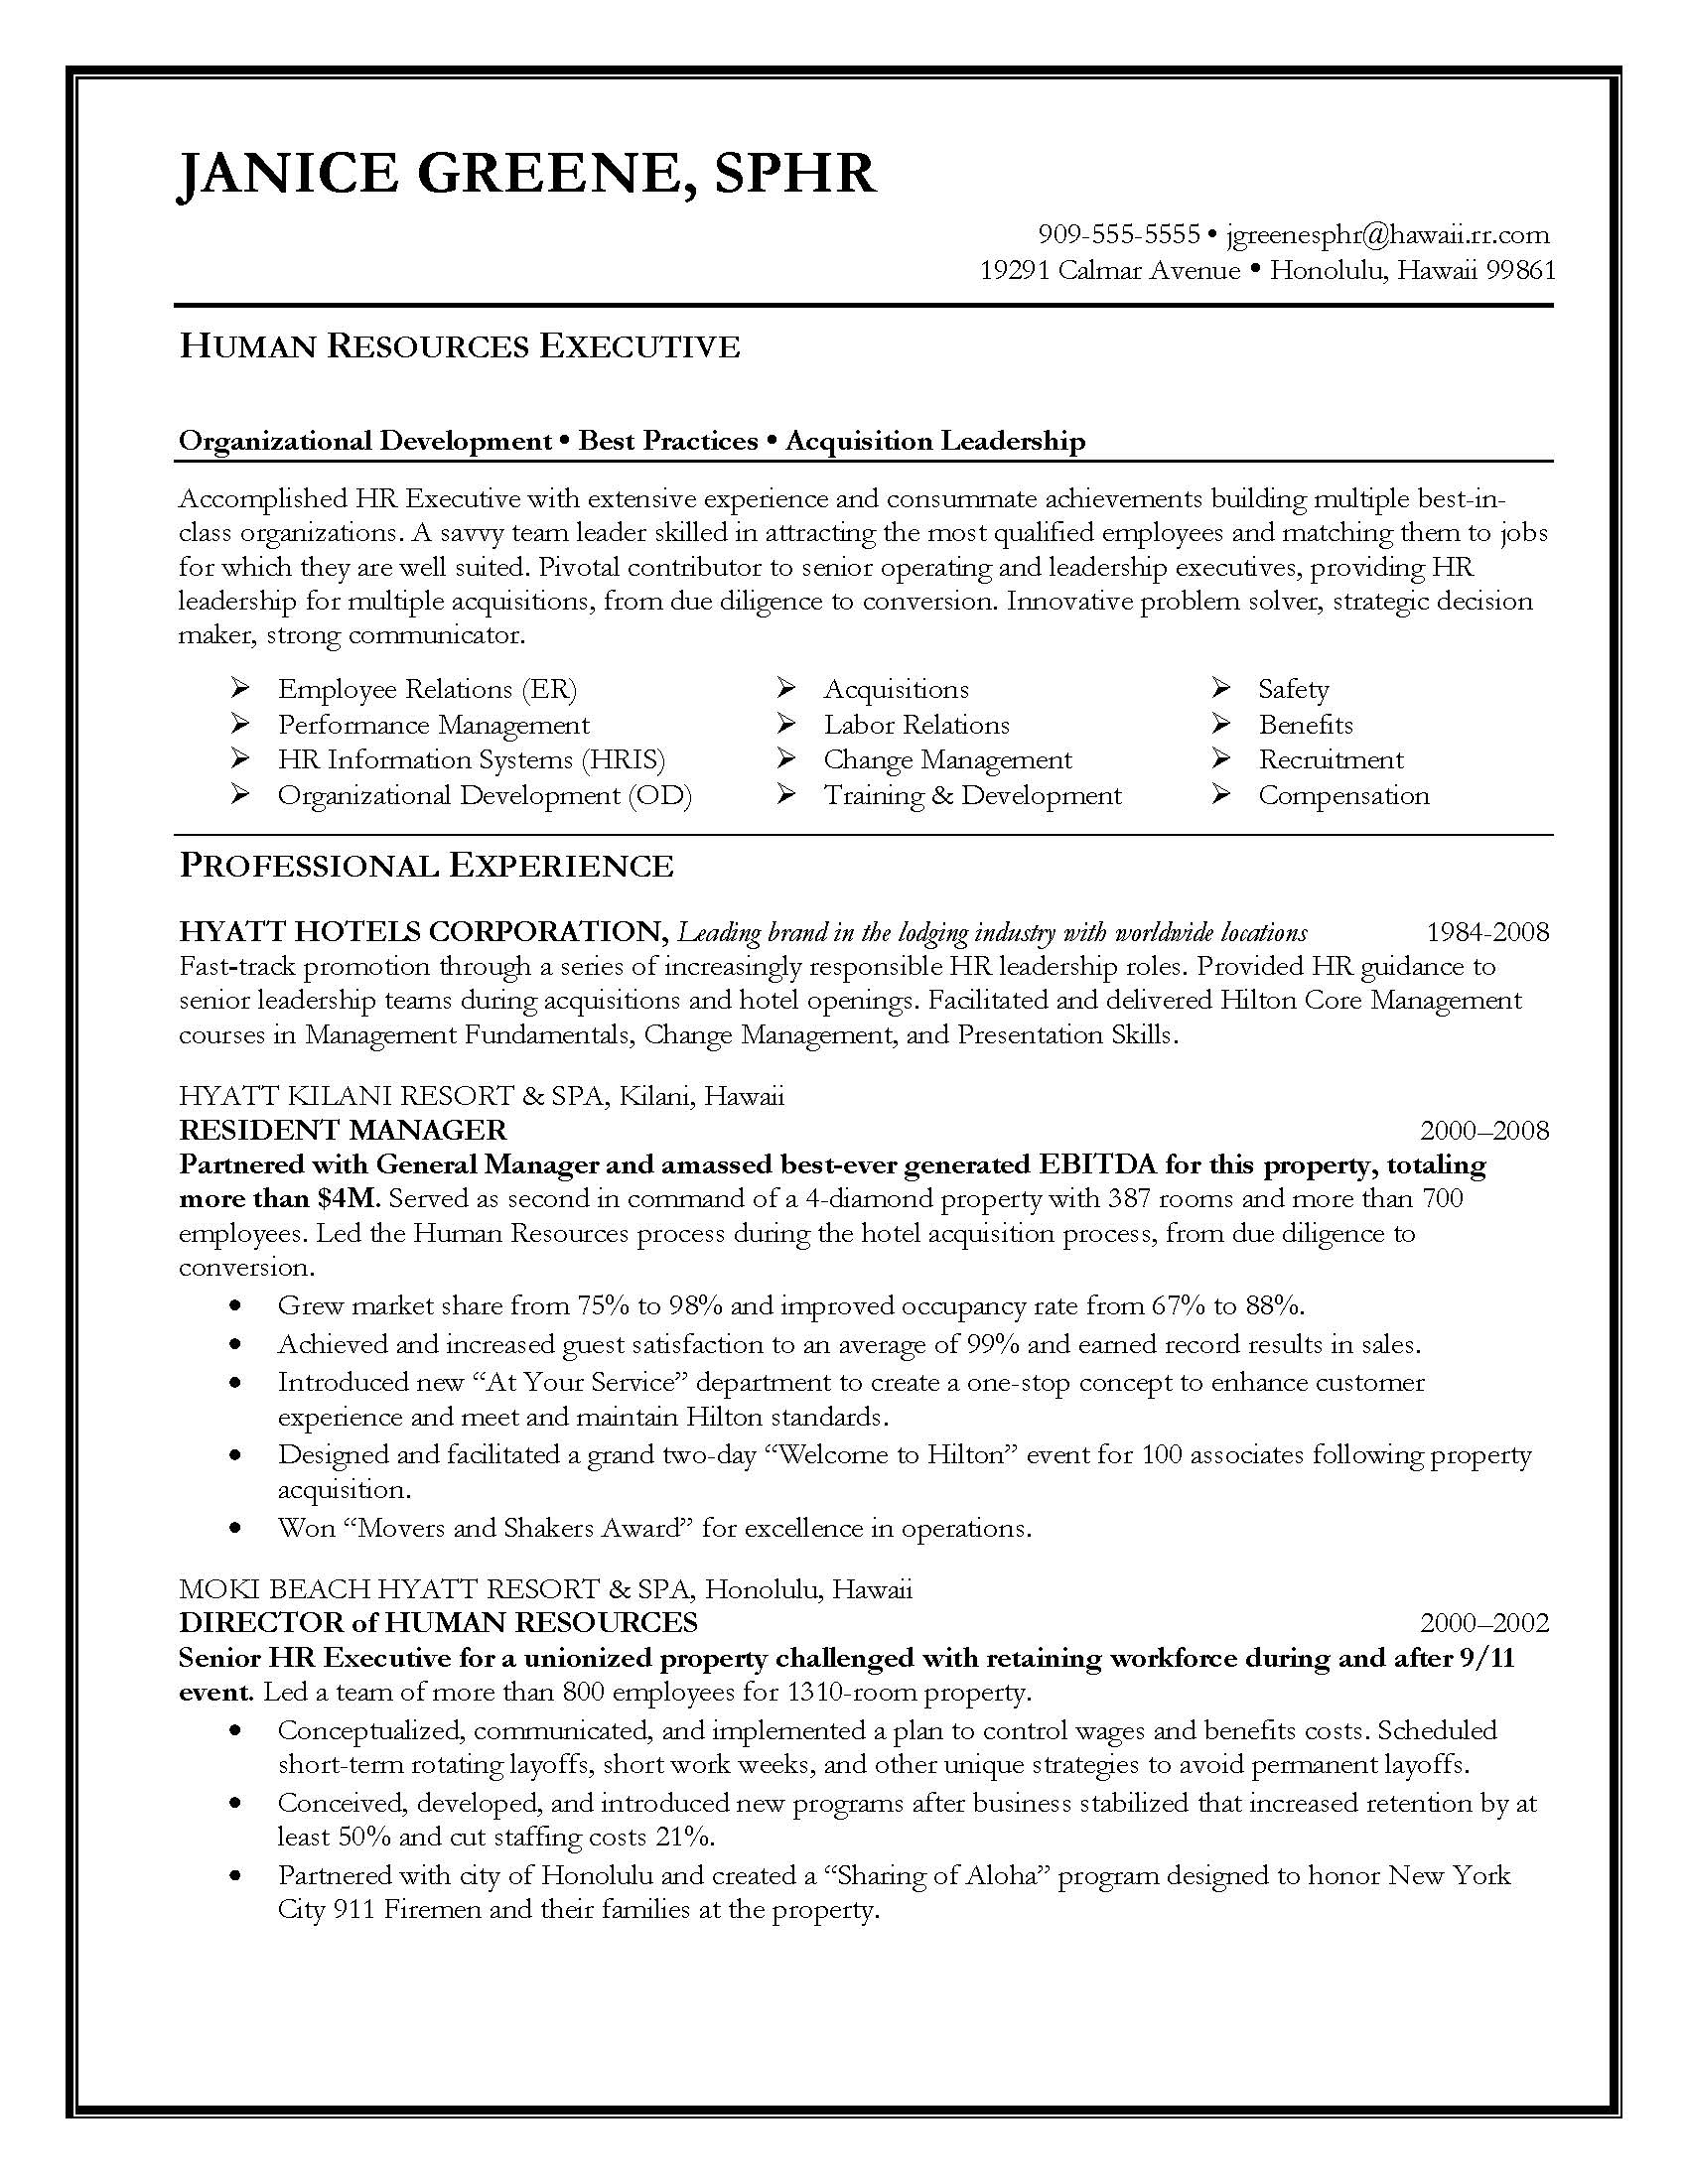 ... resume Executive Resume Writing executive resume service u amp resume